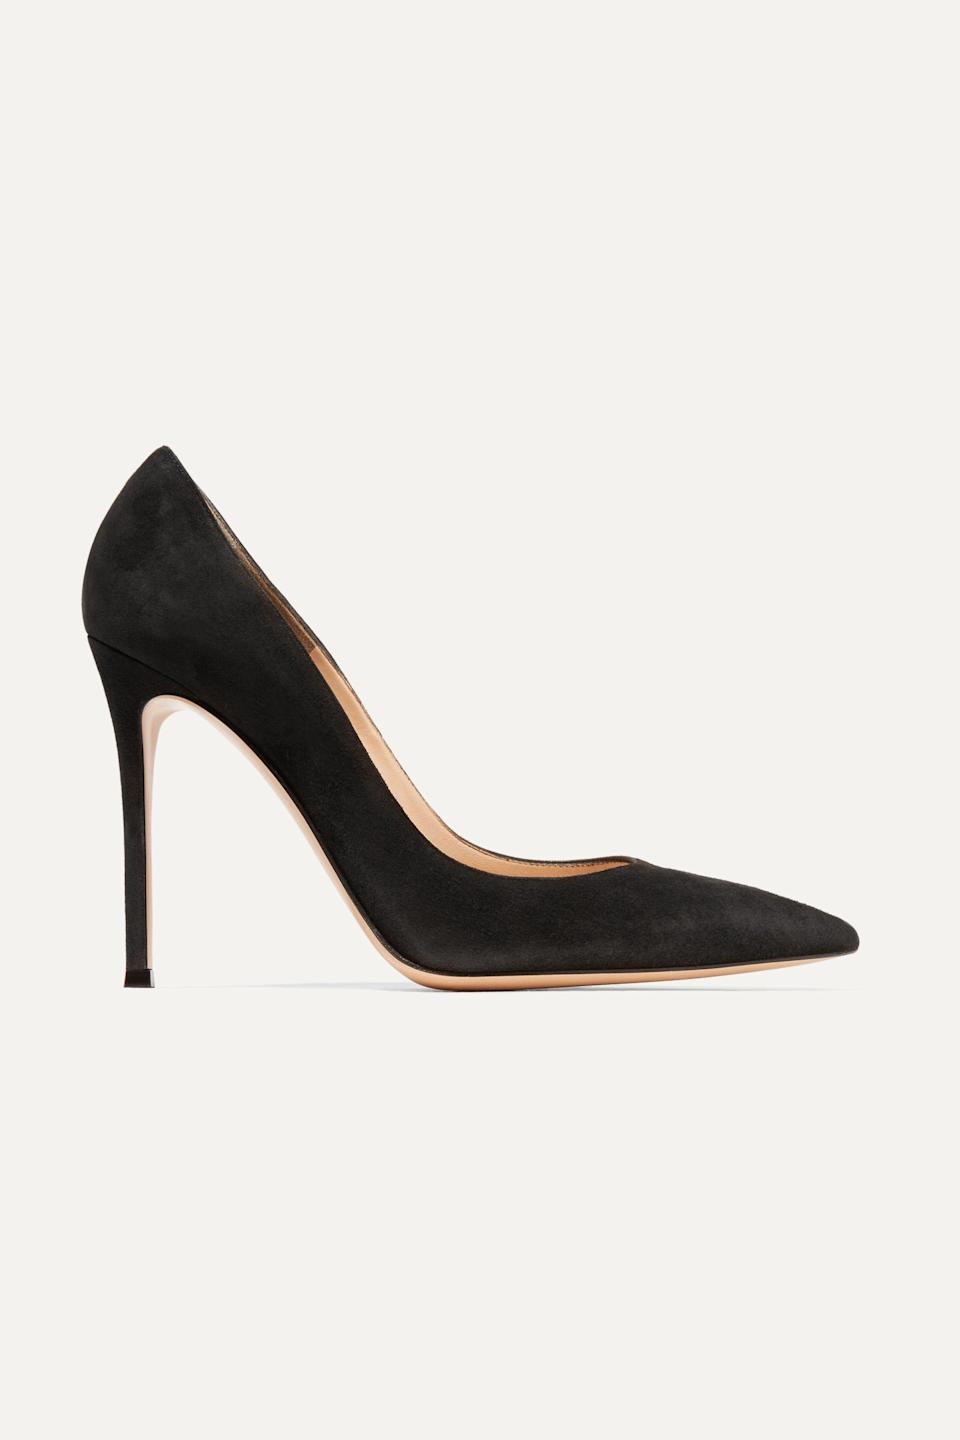 """<p><strong>Gianvito Rossi</strong></p><p>net-a-porter.com</p><p><strong>$675.00</strong></p><p><a href=""""https://go.redirectingat.com?id=74968X1596630&url=https%3A%2F%2Fwww.net-a-porter.com%2Fen-us%2Fshop%2Fproduct%2Fgianvito-rossi%2F105-suede-pumps%2F535955&sref=https%3A%2F%2Fwww.townandcountrymag.com%2Fstyle%2Ffashion-trends%2Fg10344923%2Fkate-middleton-favorite-fashion-brands-designers%2F"""" rel=""""nofollow noopener"""" target=""""_blank"""" data-ylk=""""slk:Shop Now"""" class=""""link rapid-noclick-resp"""">Shop Now</a></p><p>The duchess owns these classic pumps in at least four colors (burgundy, black, red, and nude).</p><p><strong>More: </strong><a href=""""https://www.townandcountrymag.com/style/fashion-trends/g15925659/kate-middleton-favorite-shoes/"""" rel=""""nofollow noopener"""" target=""""_blank"""" data-ylk=""""slk:Where to Buy Kate Middleton's Favorite Shoes"""" class=""""link rapid-noclick-resp"""">Where to Buy Kate Middleton's Favorite Shoes</a></p>"""